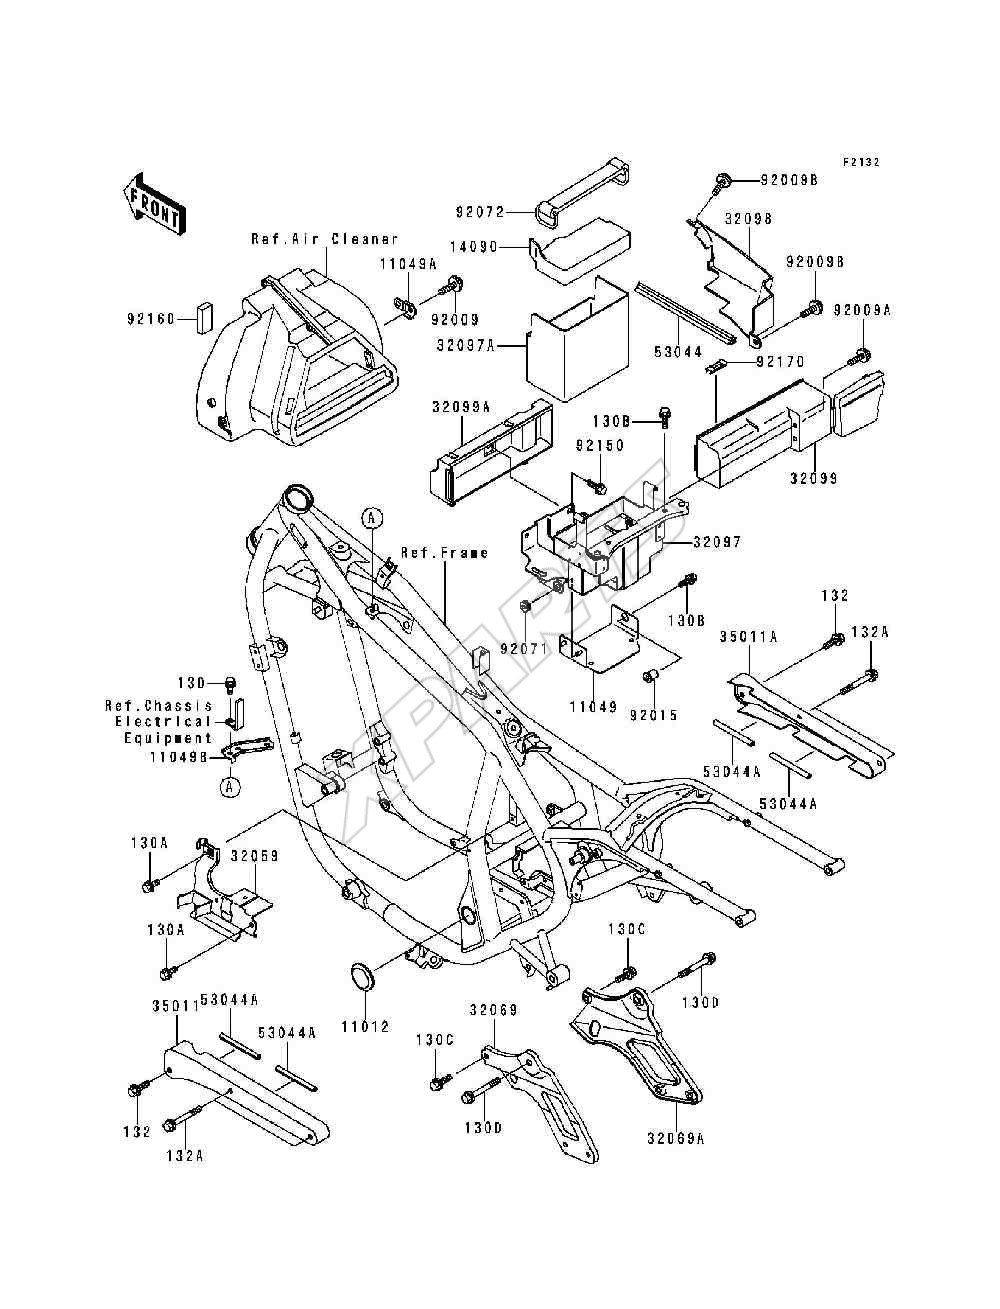 Kawasaki Vulcan 500 Wiring Diagram 2001 1500 Free Picture Fuel Filter Location Get Image About Electrical Diagrams 636 Wire